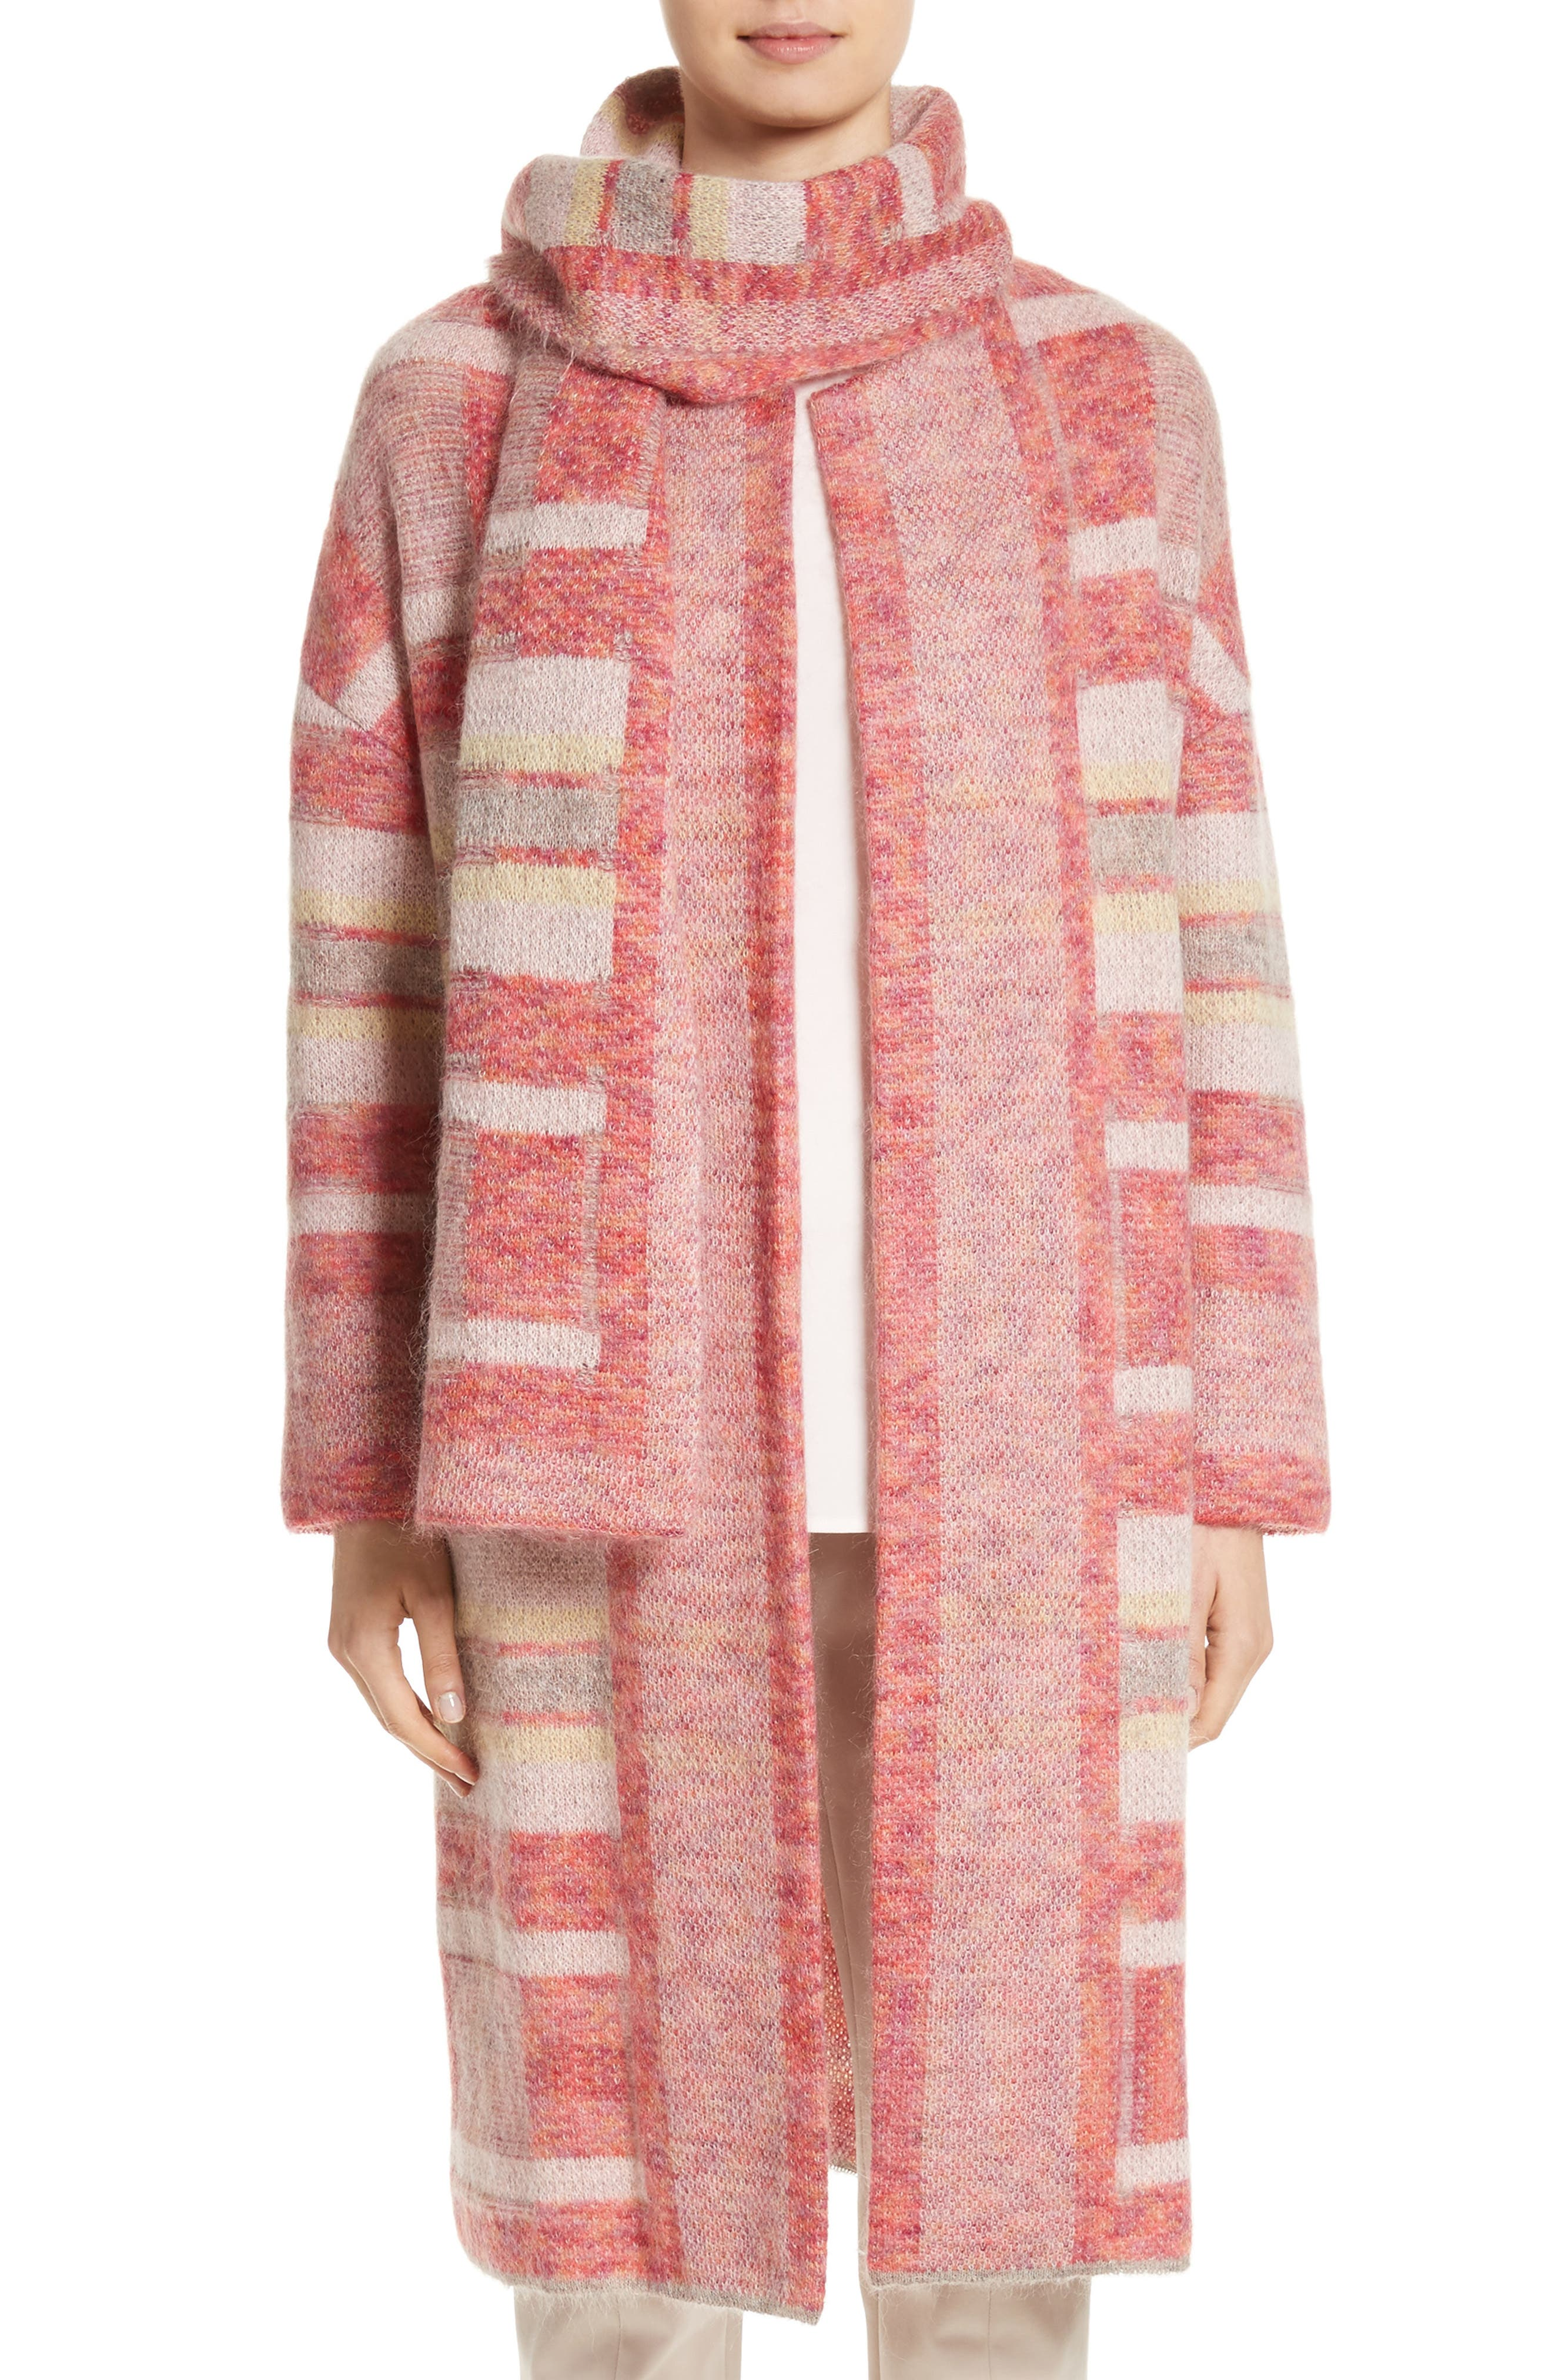 Lofty Knit Plaid Blanket Coat,                         Main,                         color, Bright Coral Multi